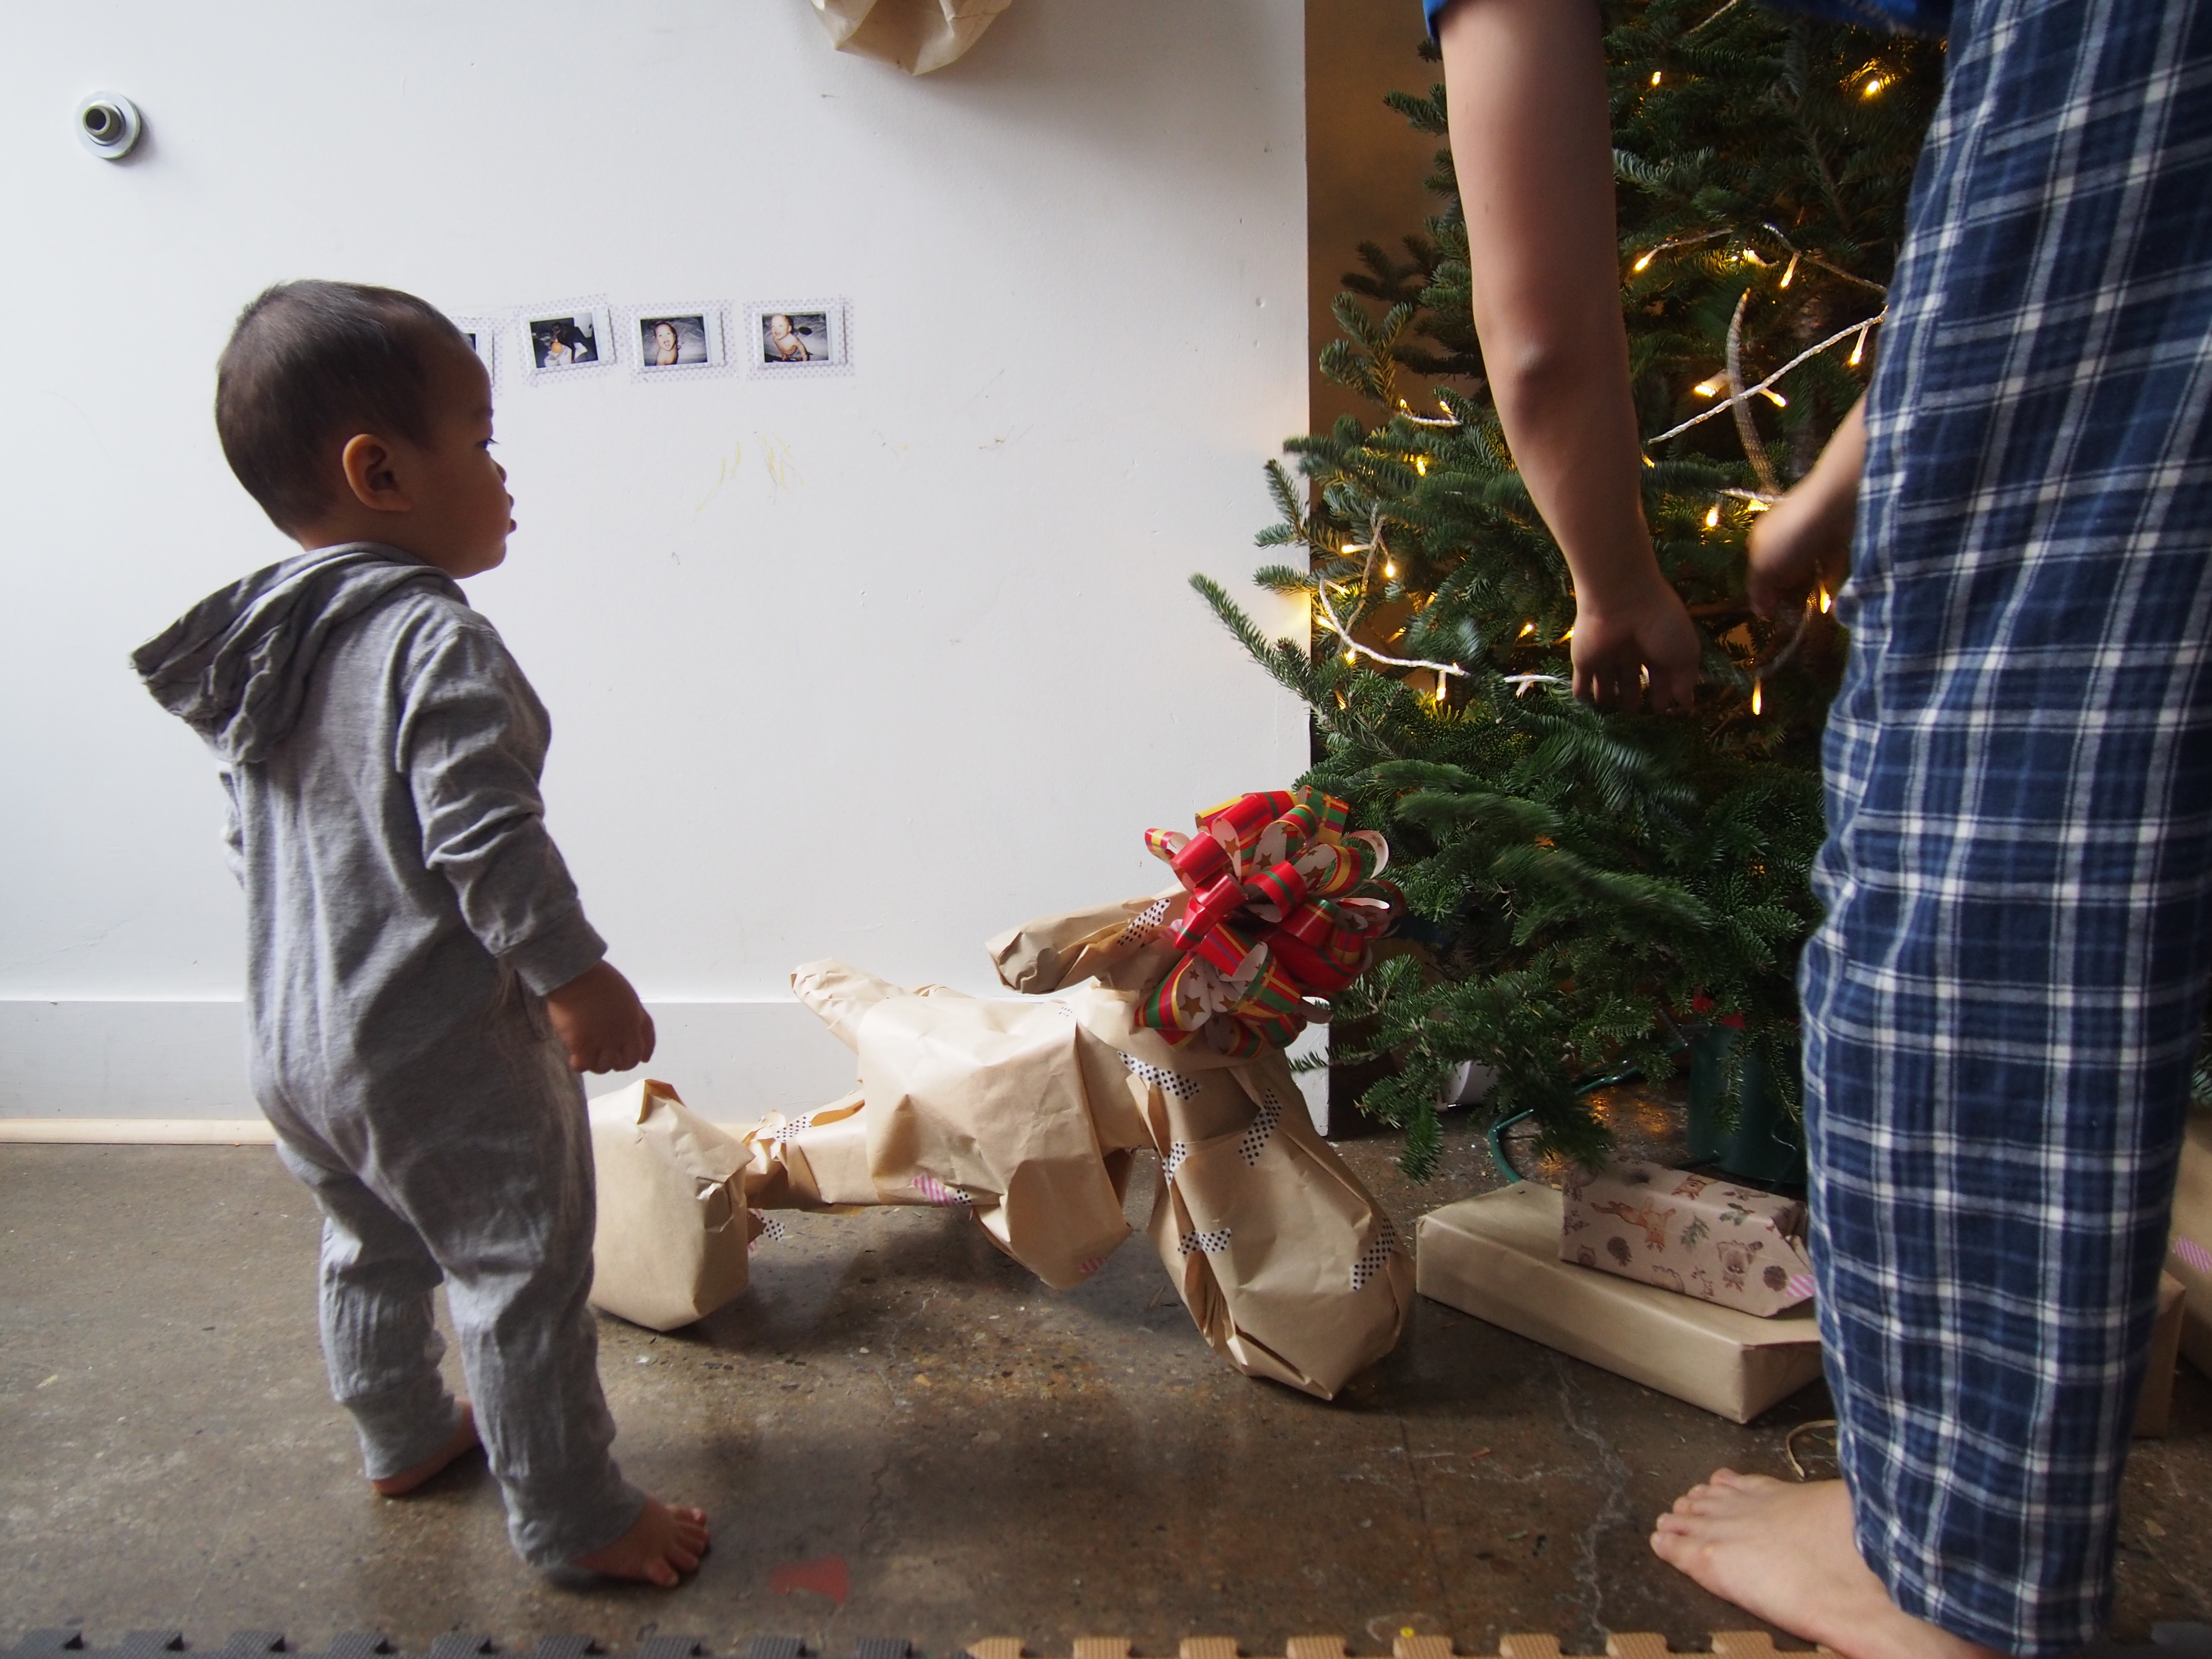 Jon, fixing the lights. Caleb, watching, unaware that his gift is in front of him.